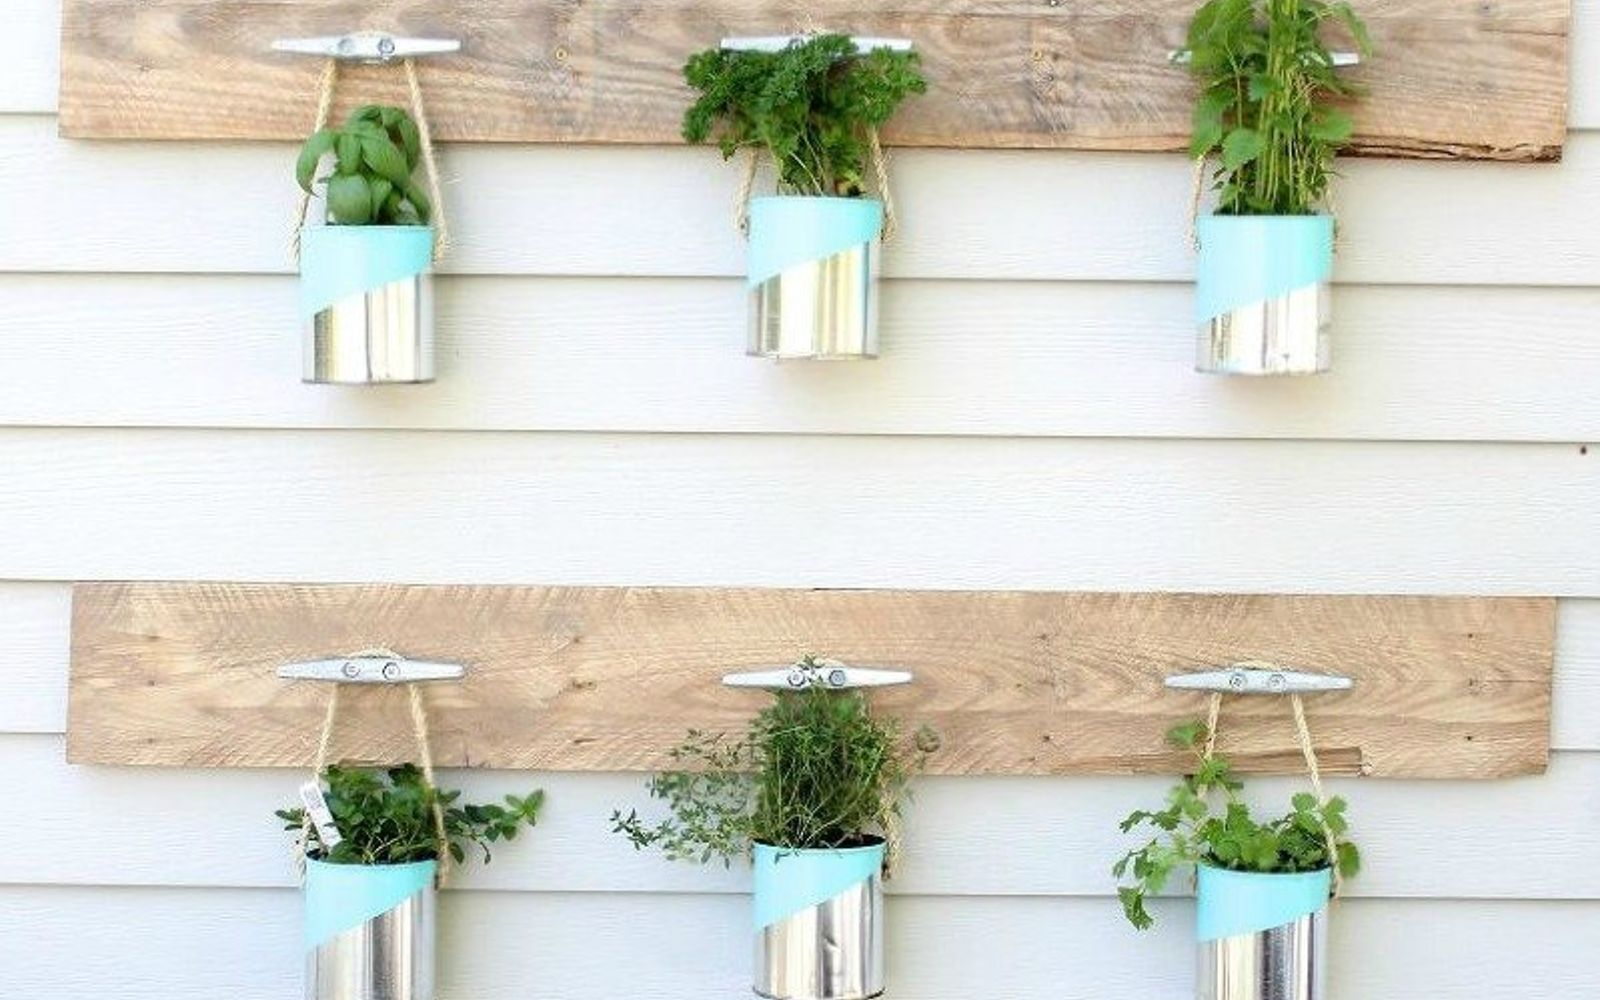 Hang your favorite herbs in a sunny spot